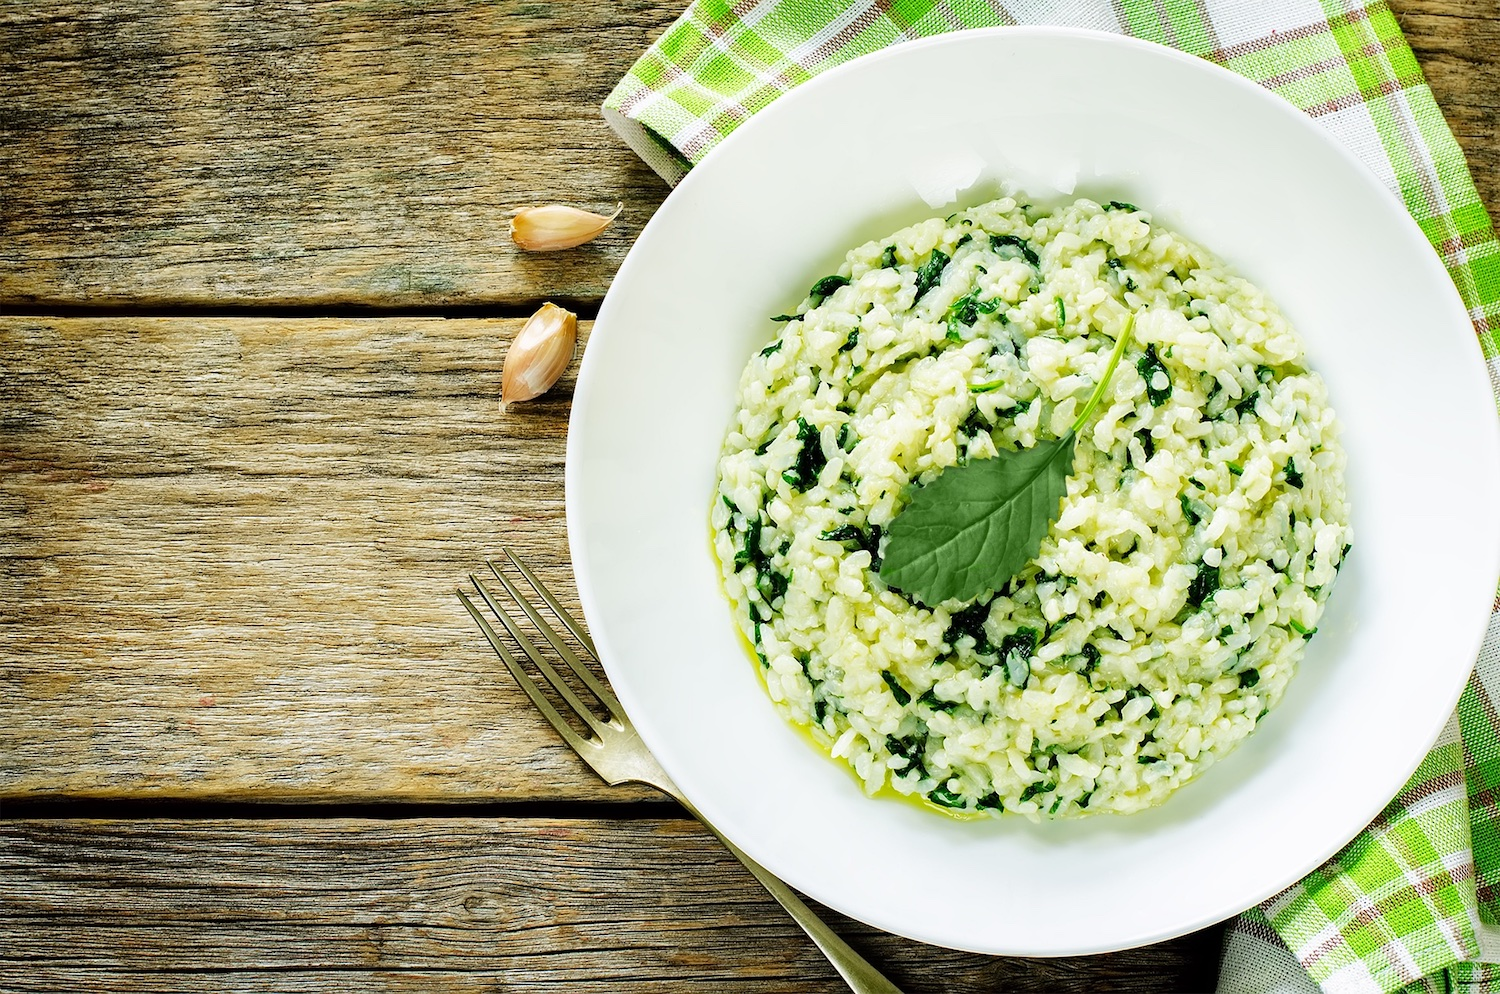 Baby kale risotto with toasted pine nuts